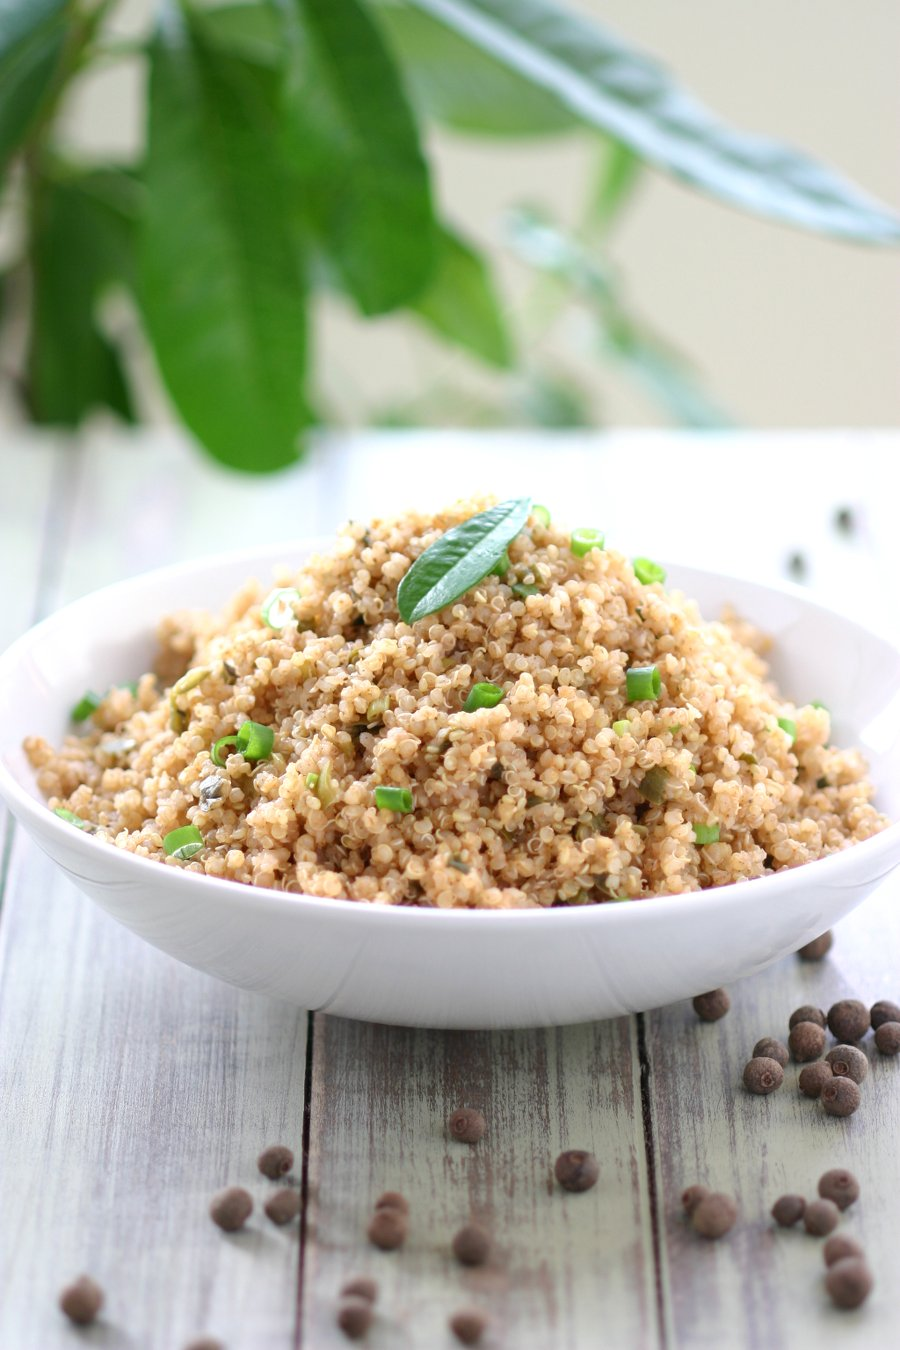 ... Quinoa can be eaten as a side dish or as a fully-loaded quinoa veggie